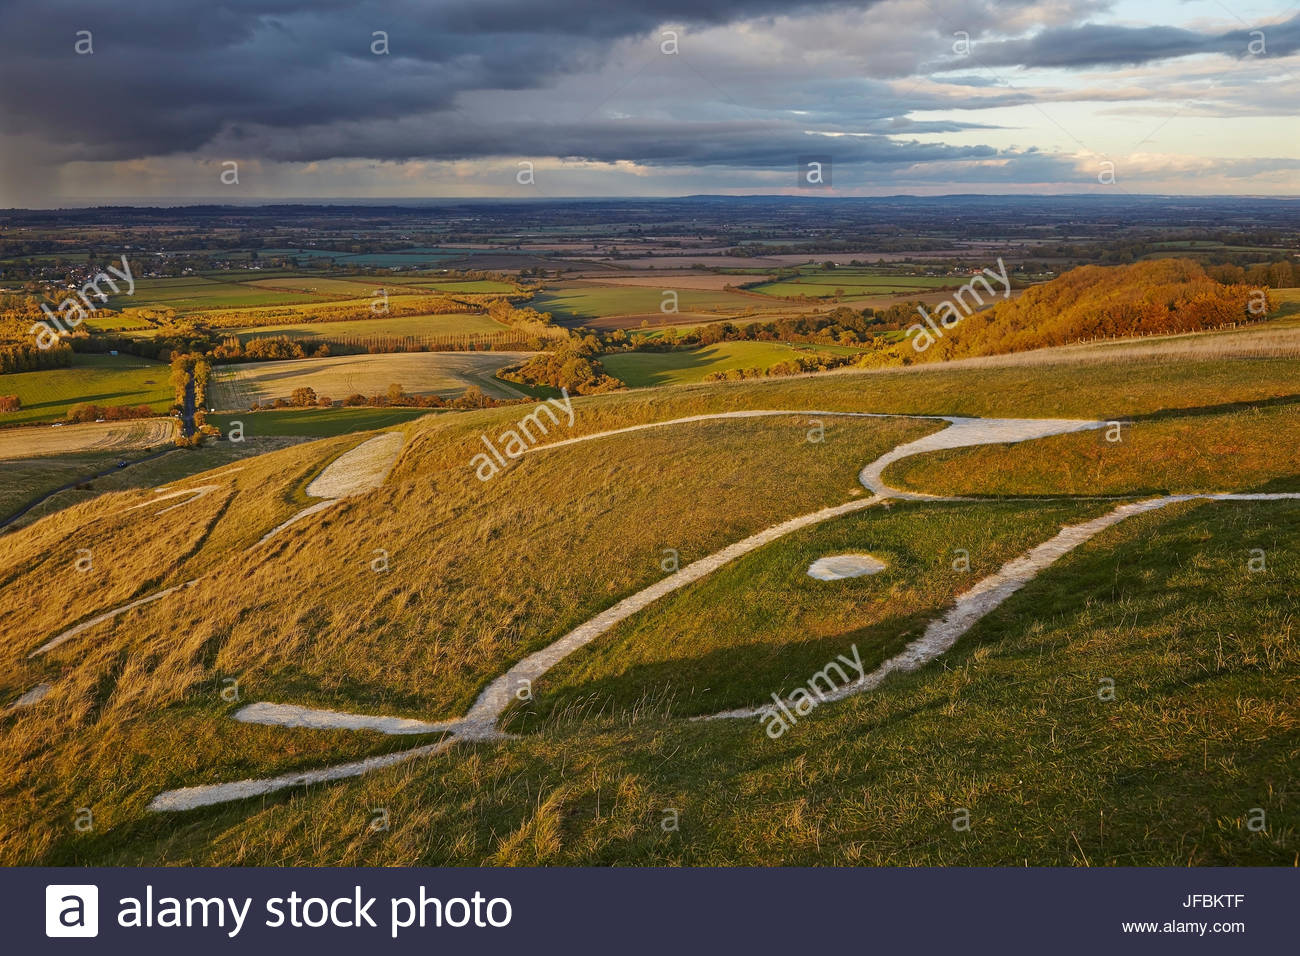 The ancient Uffington White Horse, carved into a chalk hillside near Wantage. - Stock Image